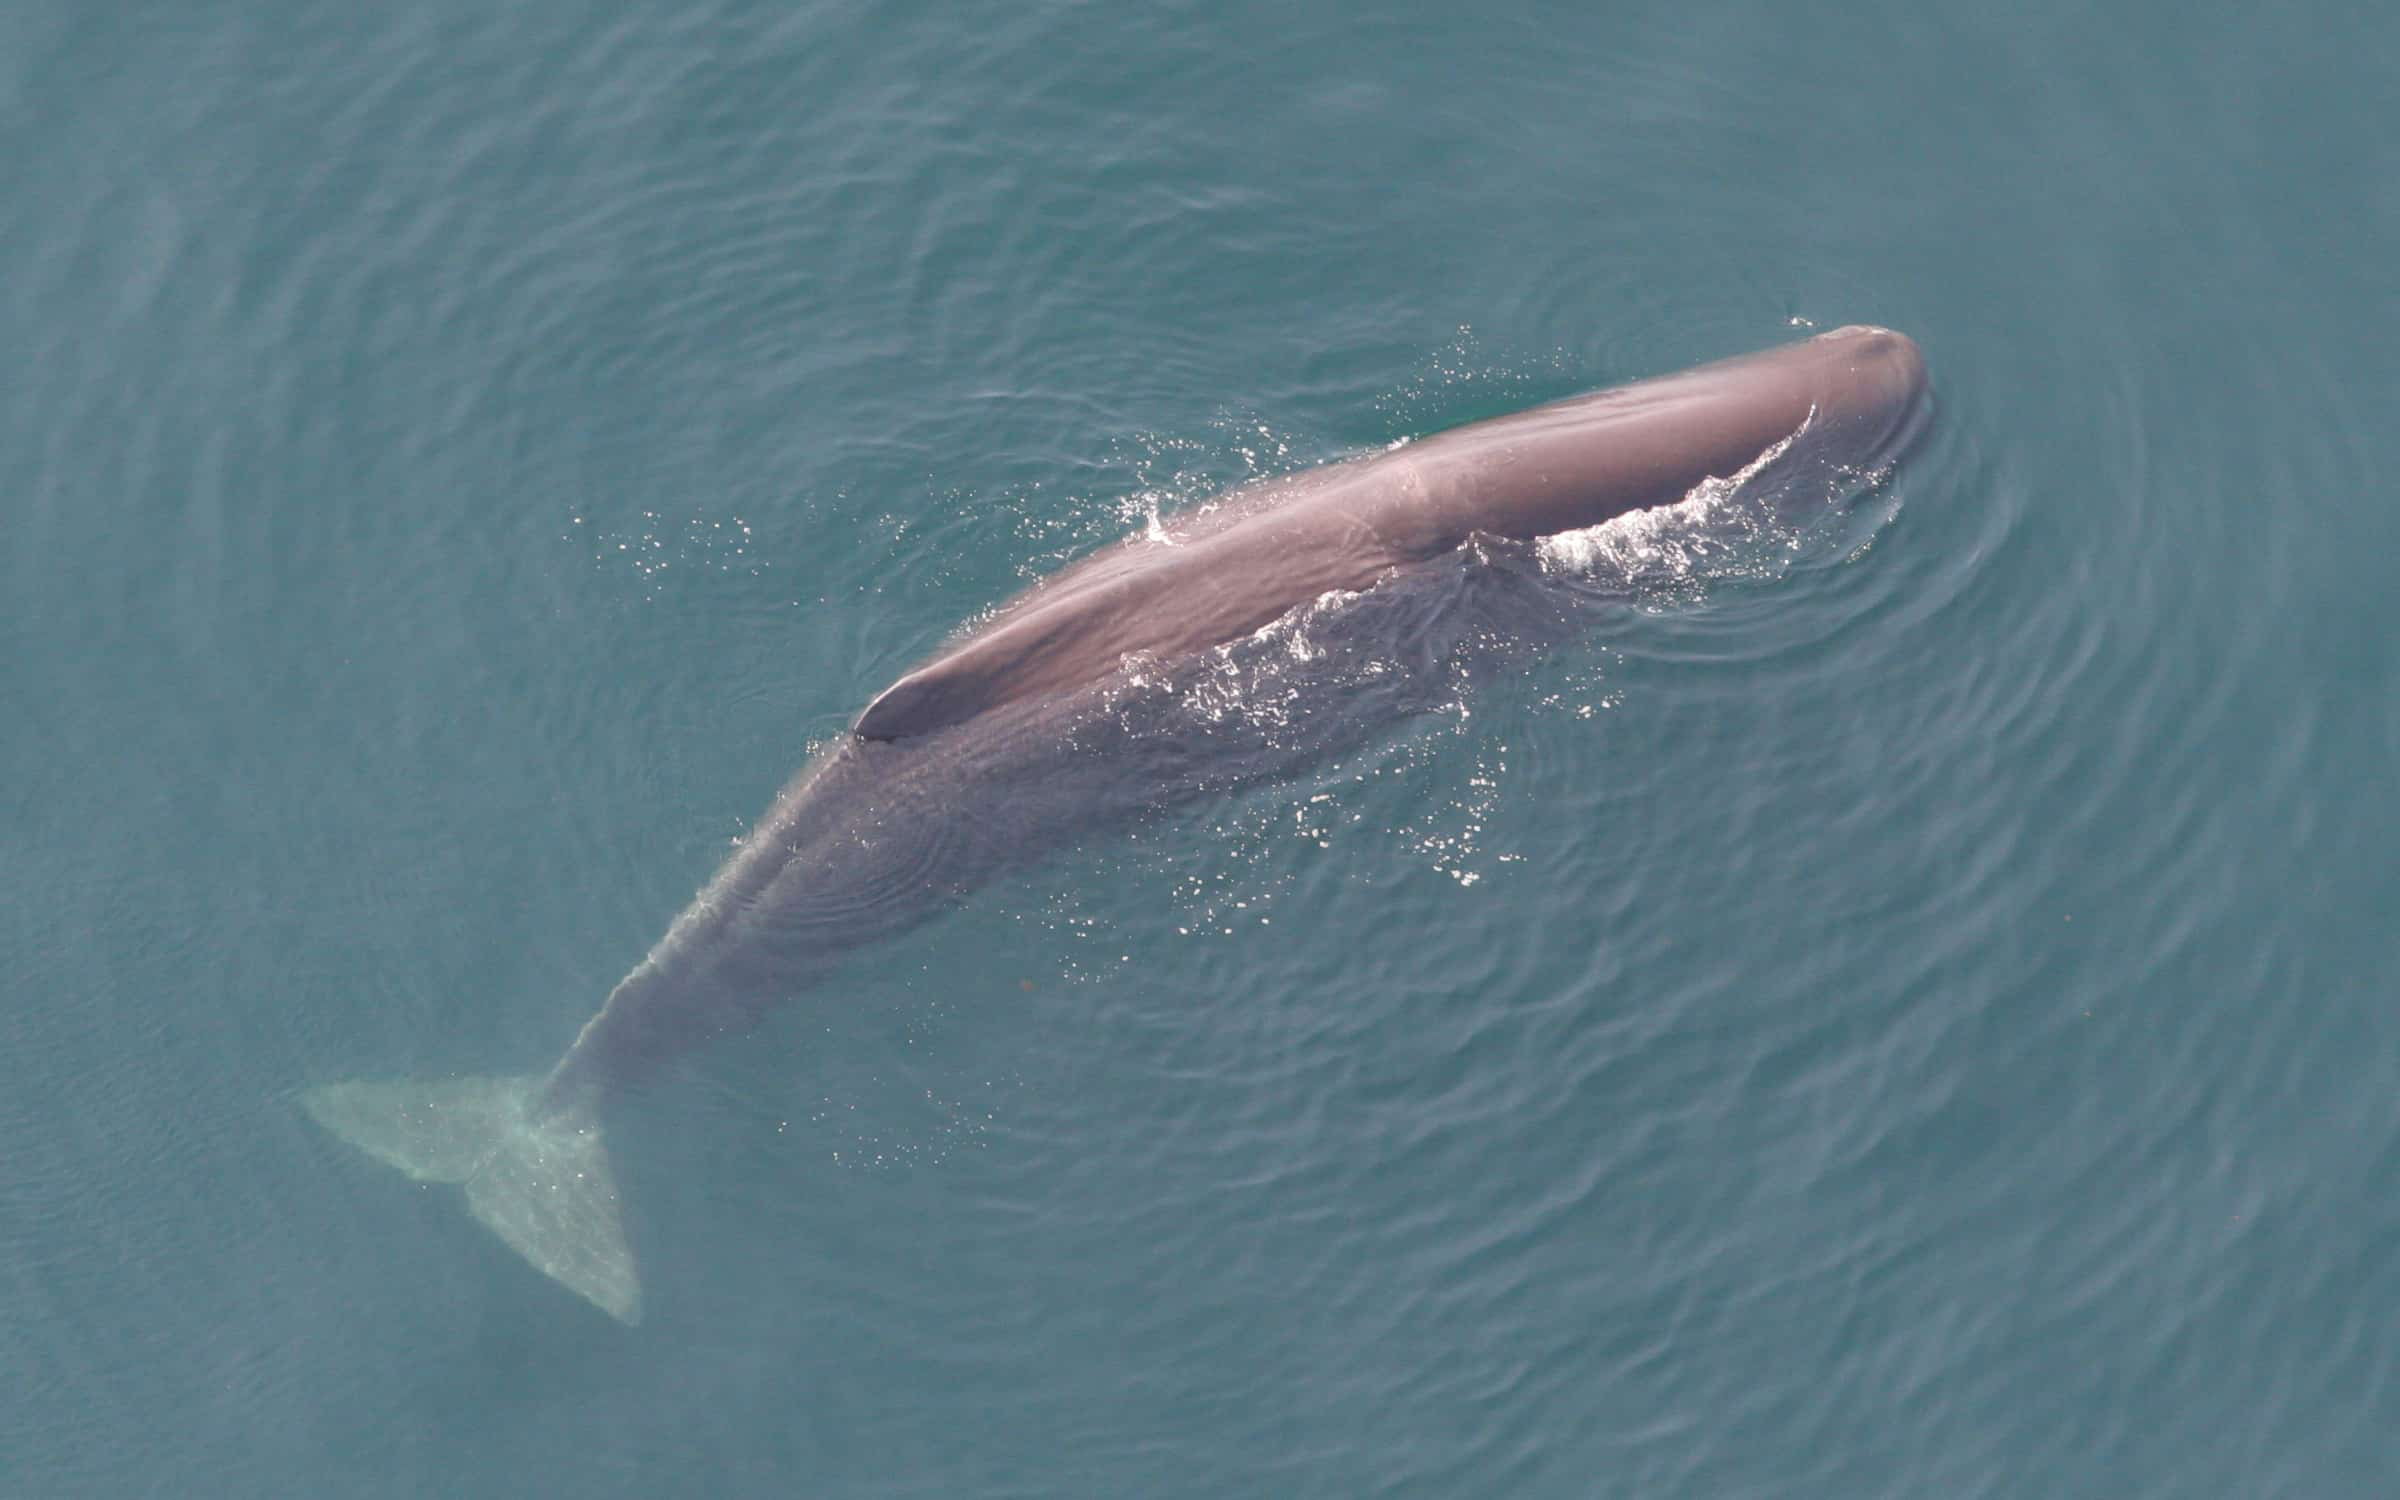 What is the size, weight and length of a Sperm Whale?